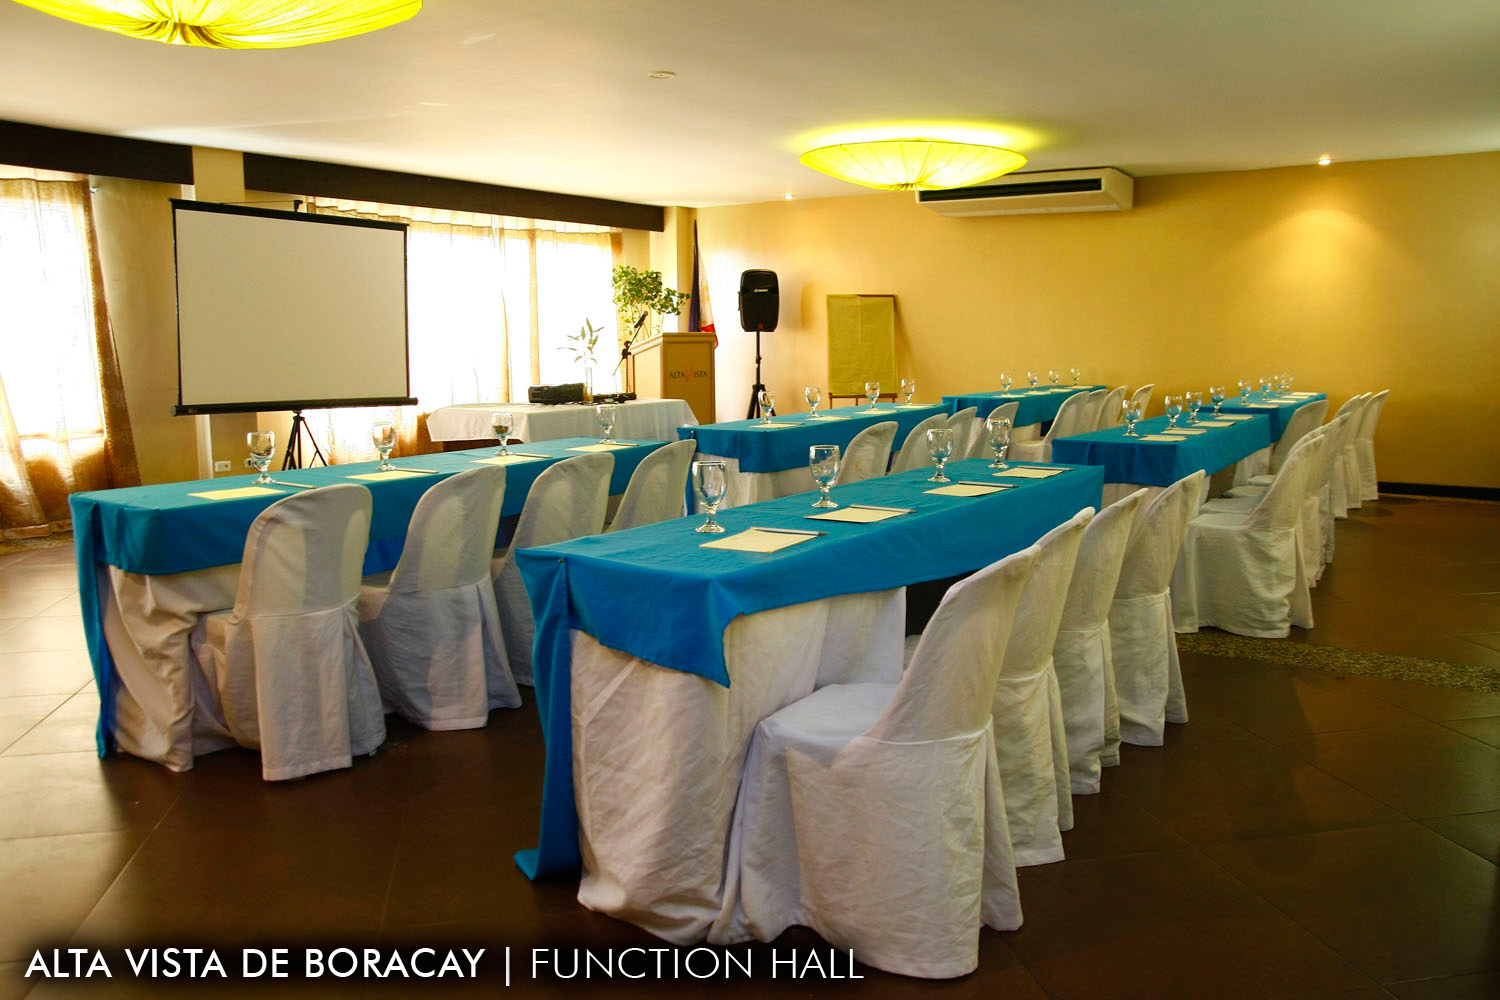 alta-vista-de-boracay-function-hall